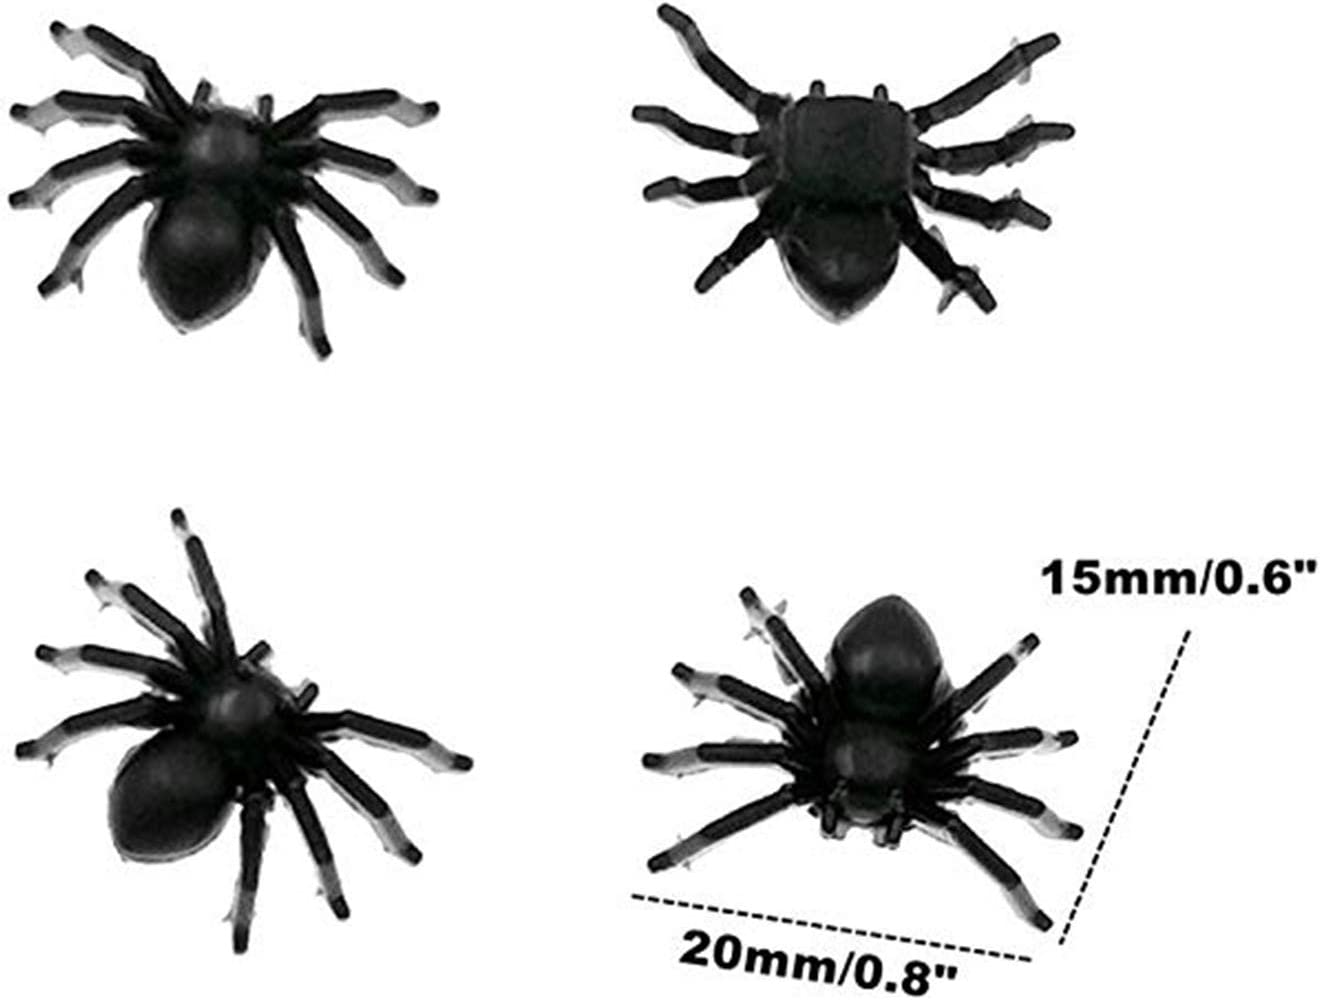 Plastic Spiders,3D Decorative Scary Spiders Mini Fake Spiders Halloween Party Prank Props for Halloween Party Fools Day Decorations CZSYZCZS Halloween Party Supplies 200 pcs